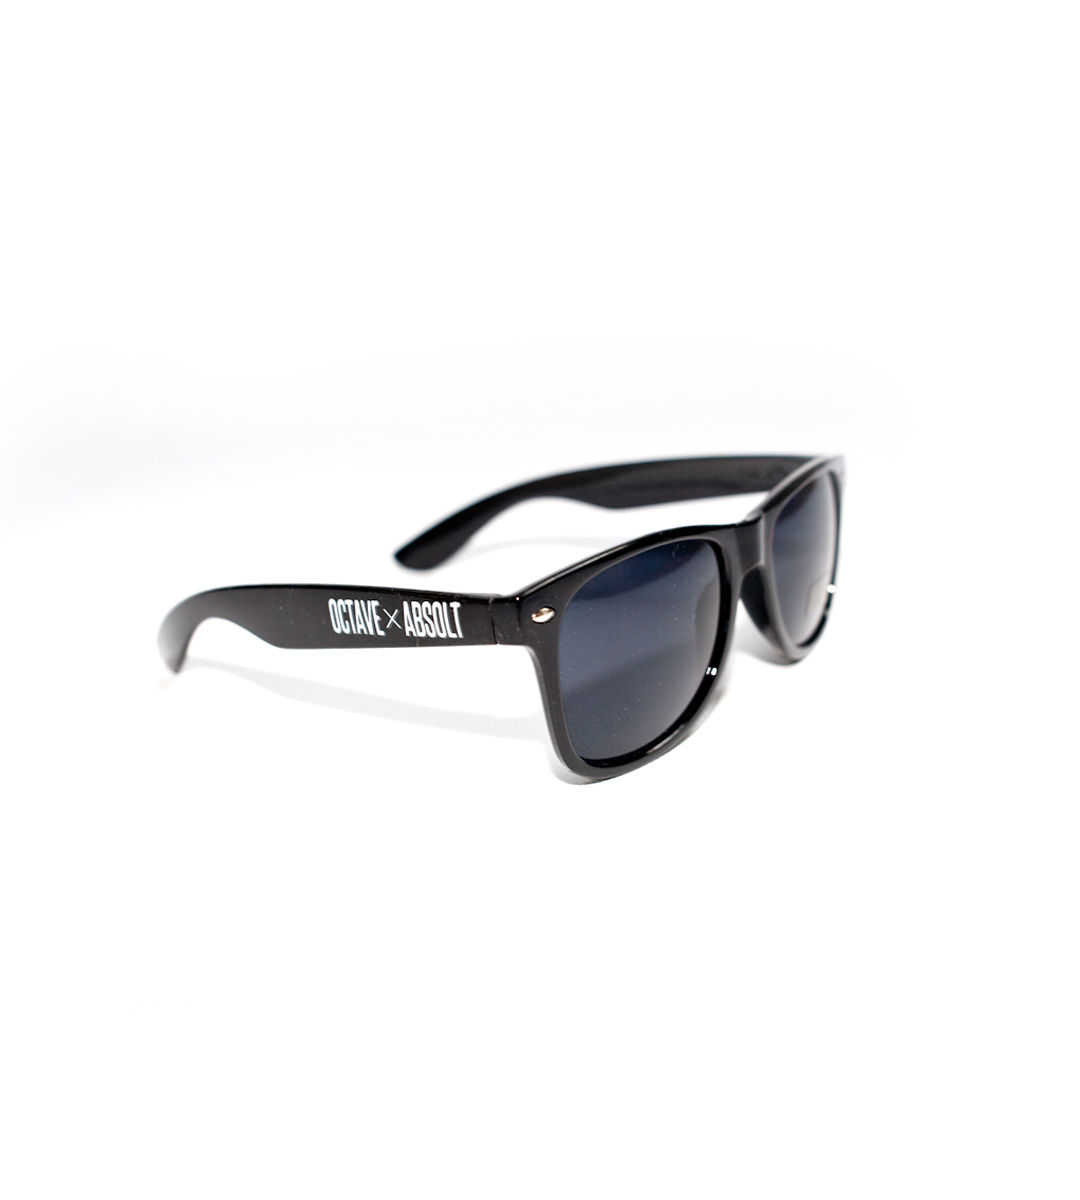 Absolt x Octave - Sunglasses - product images  of